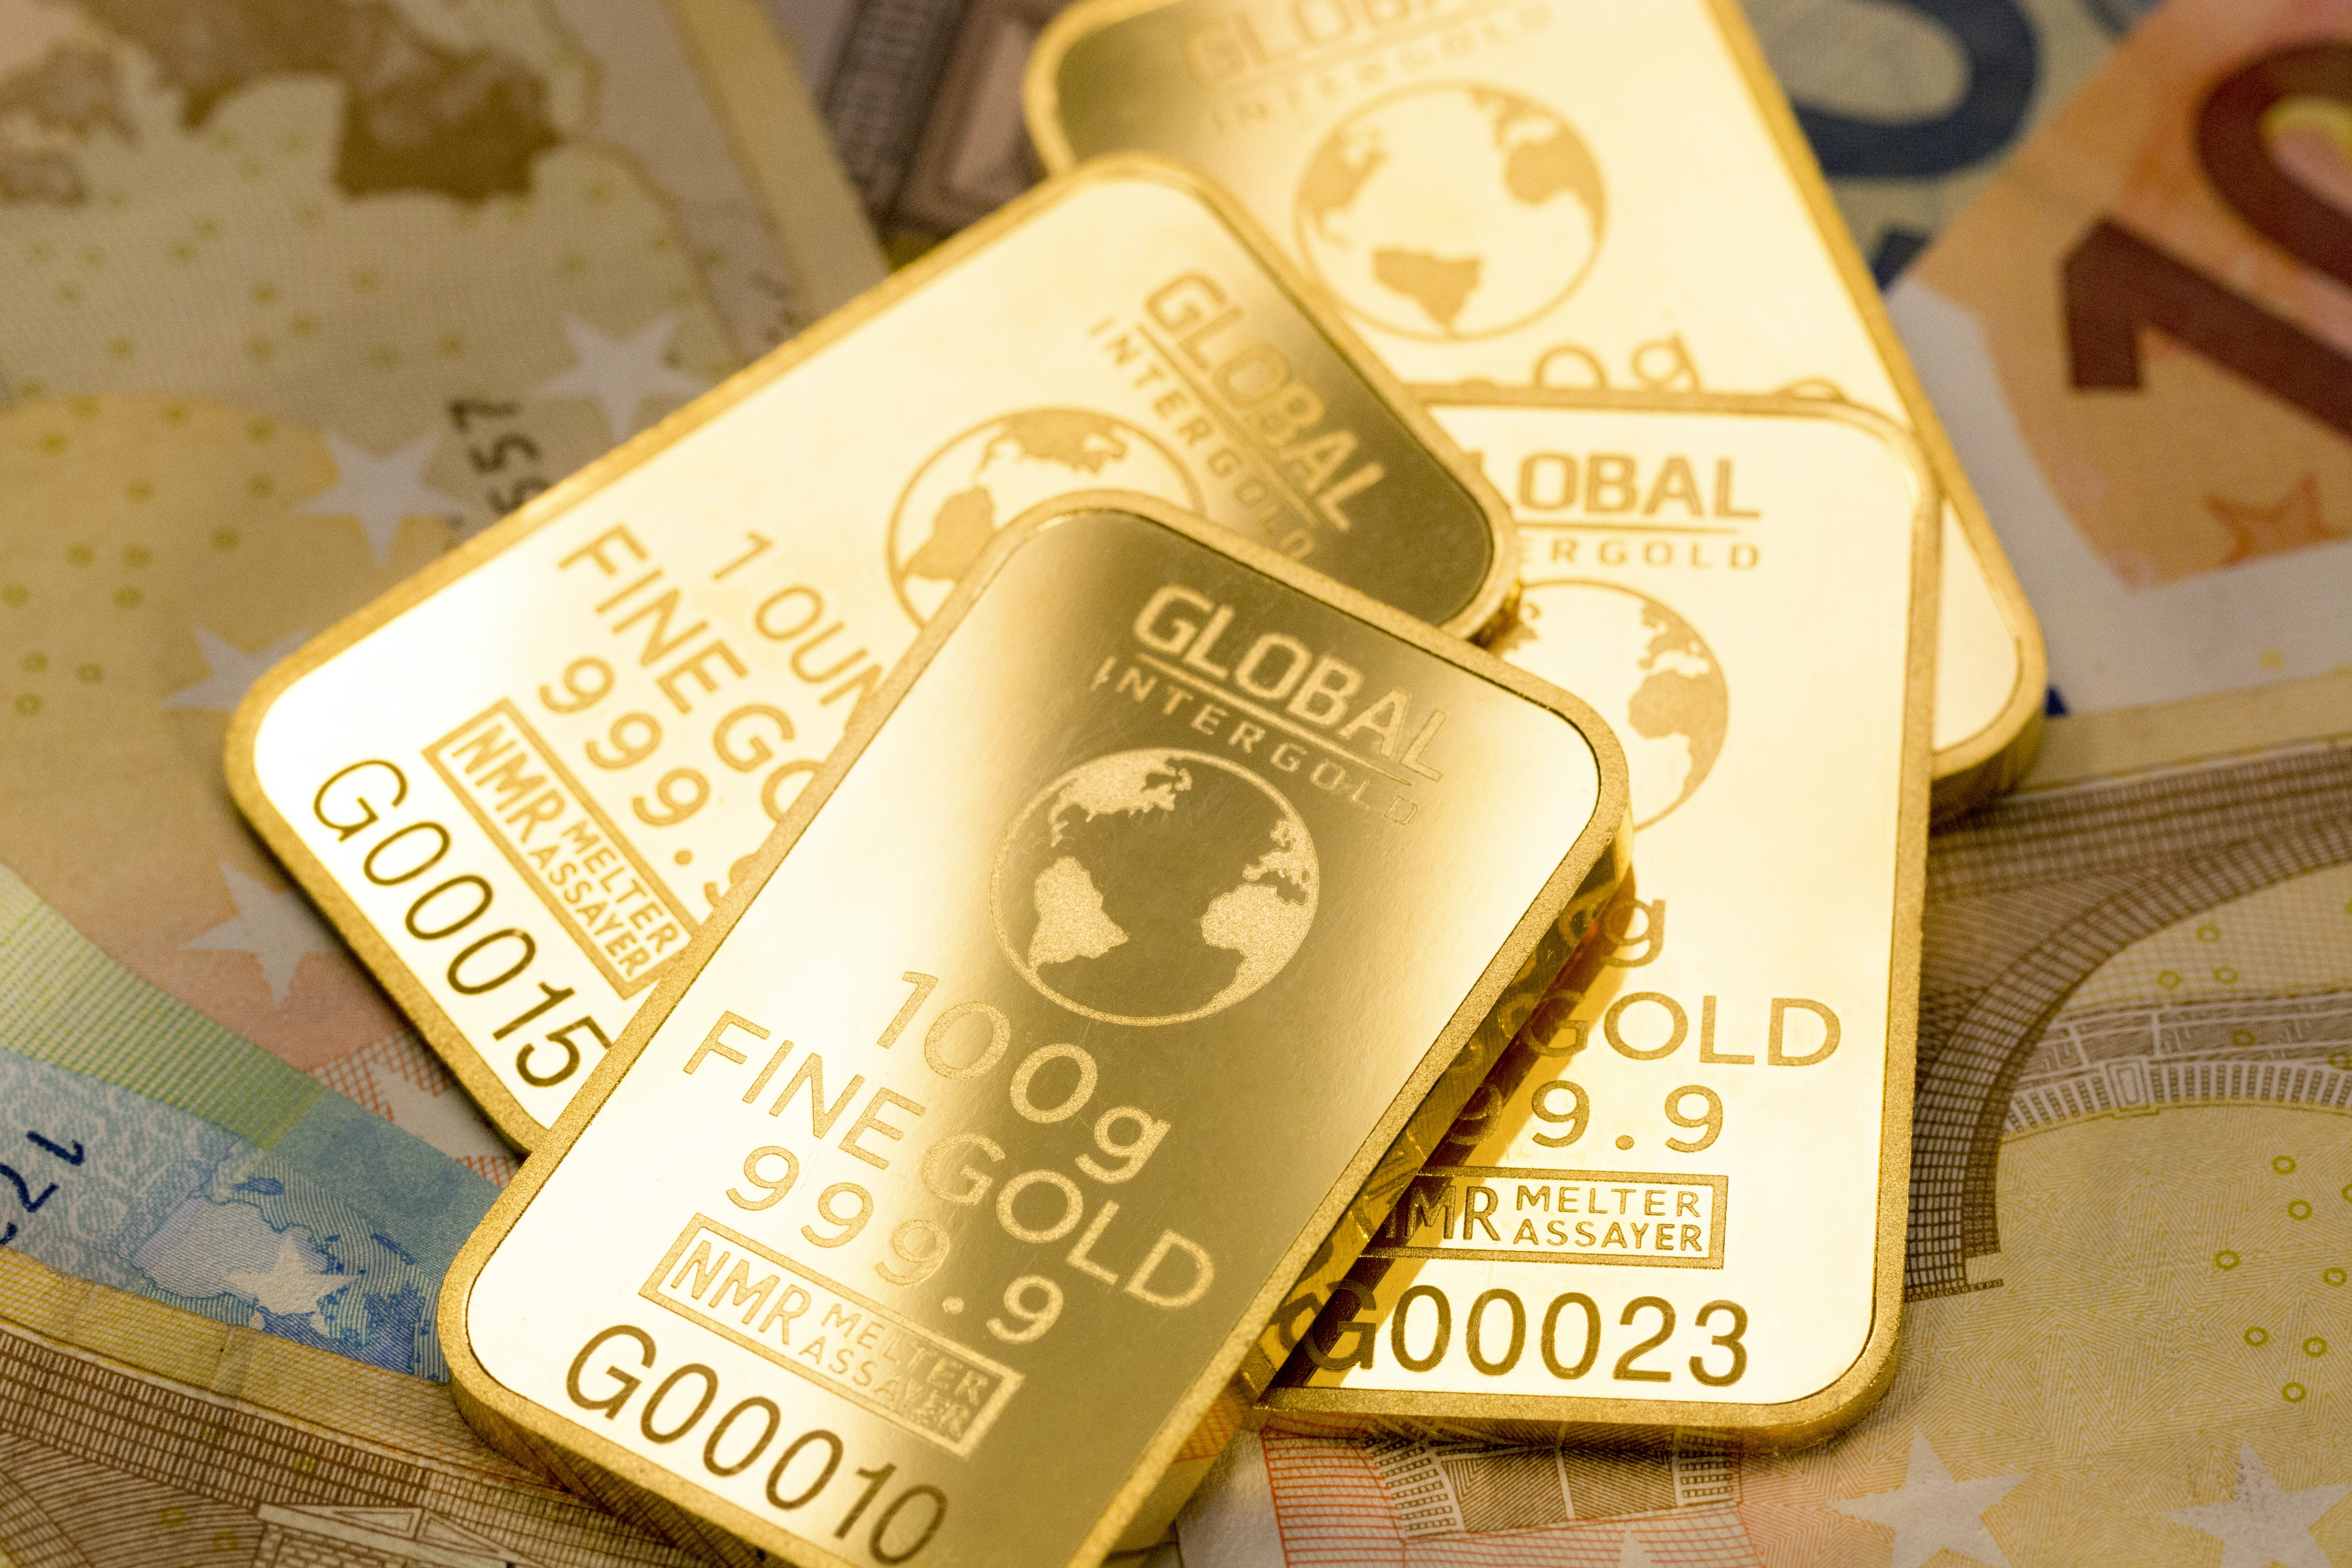 Free stock photo of business, global intergold, gold bars, gold is money